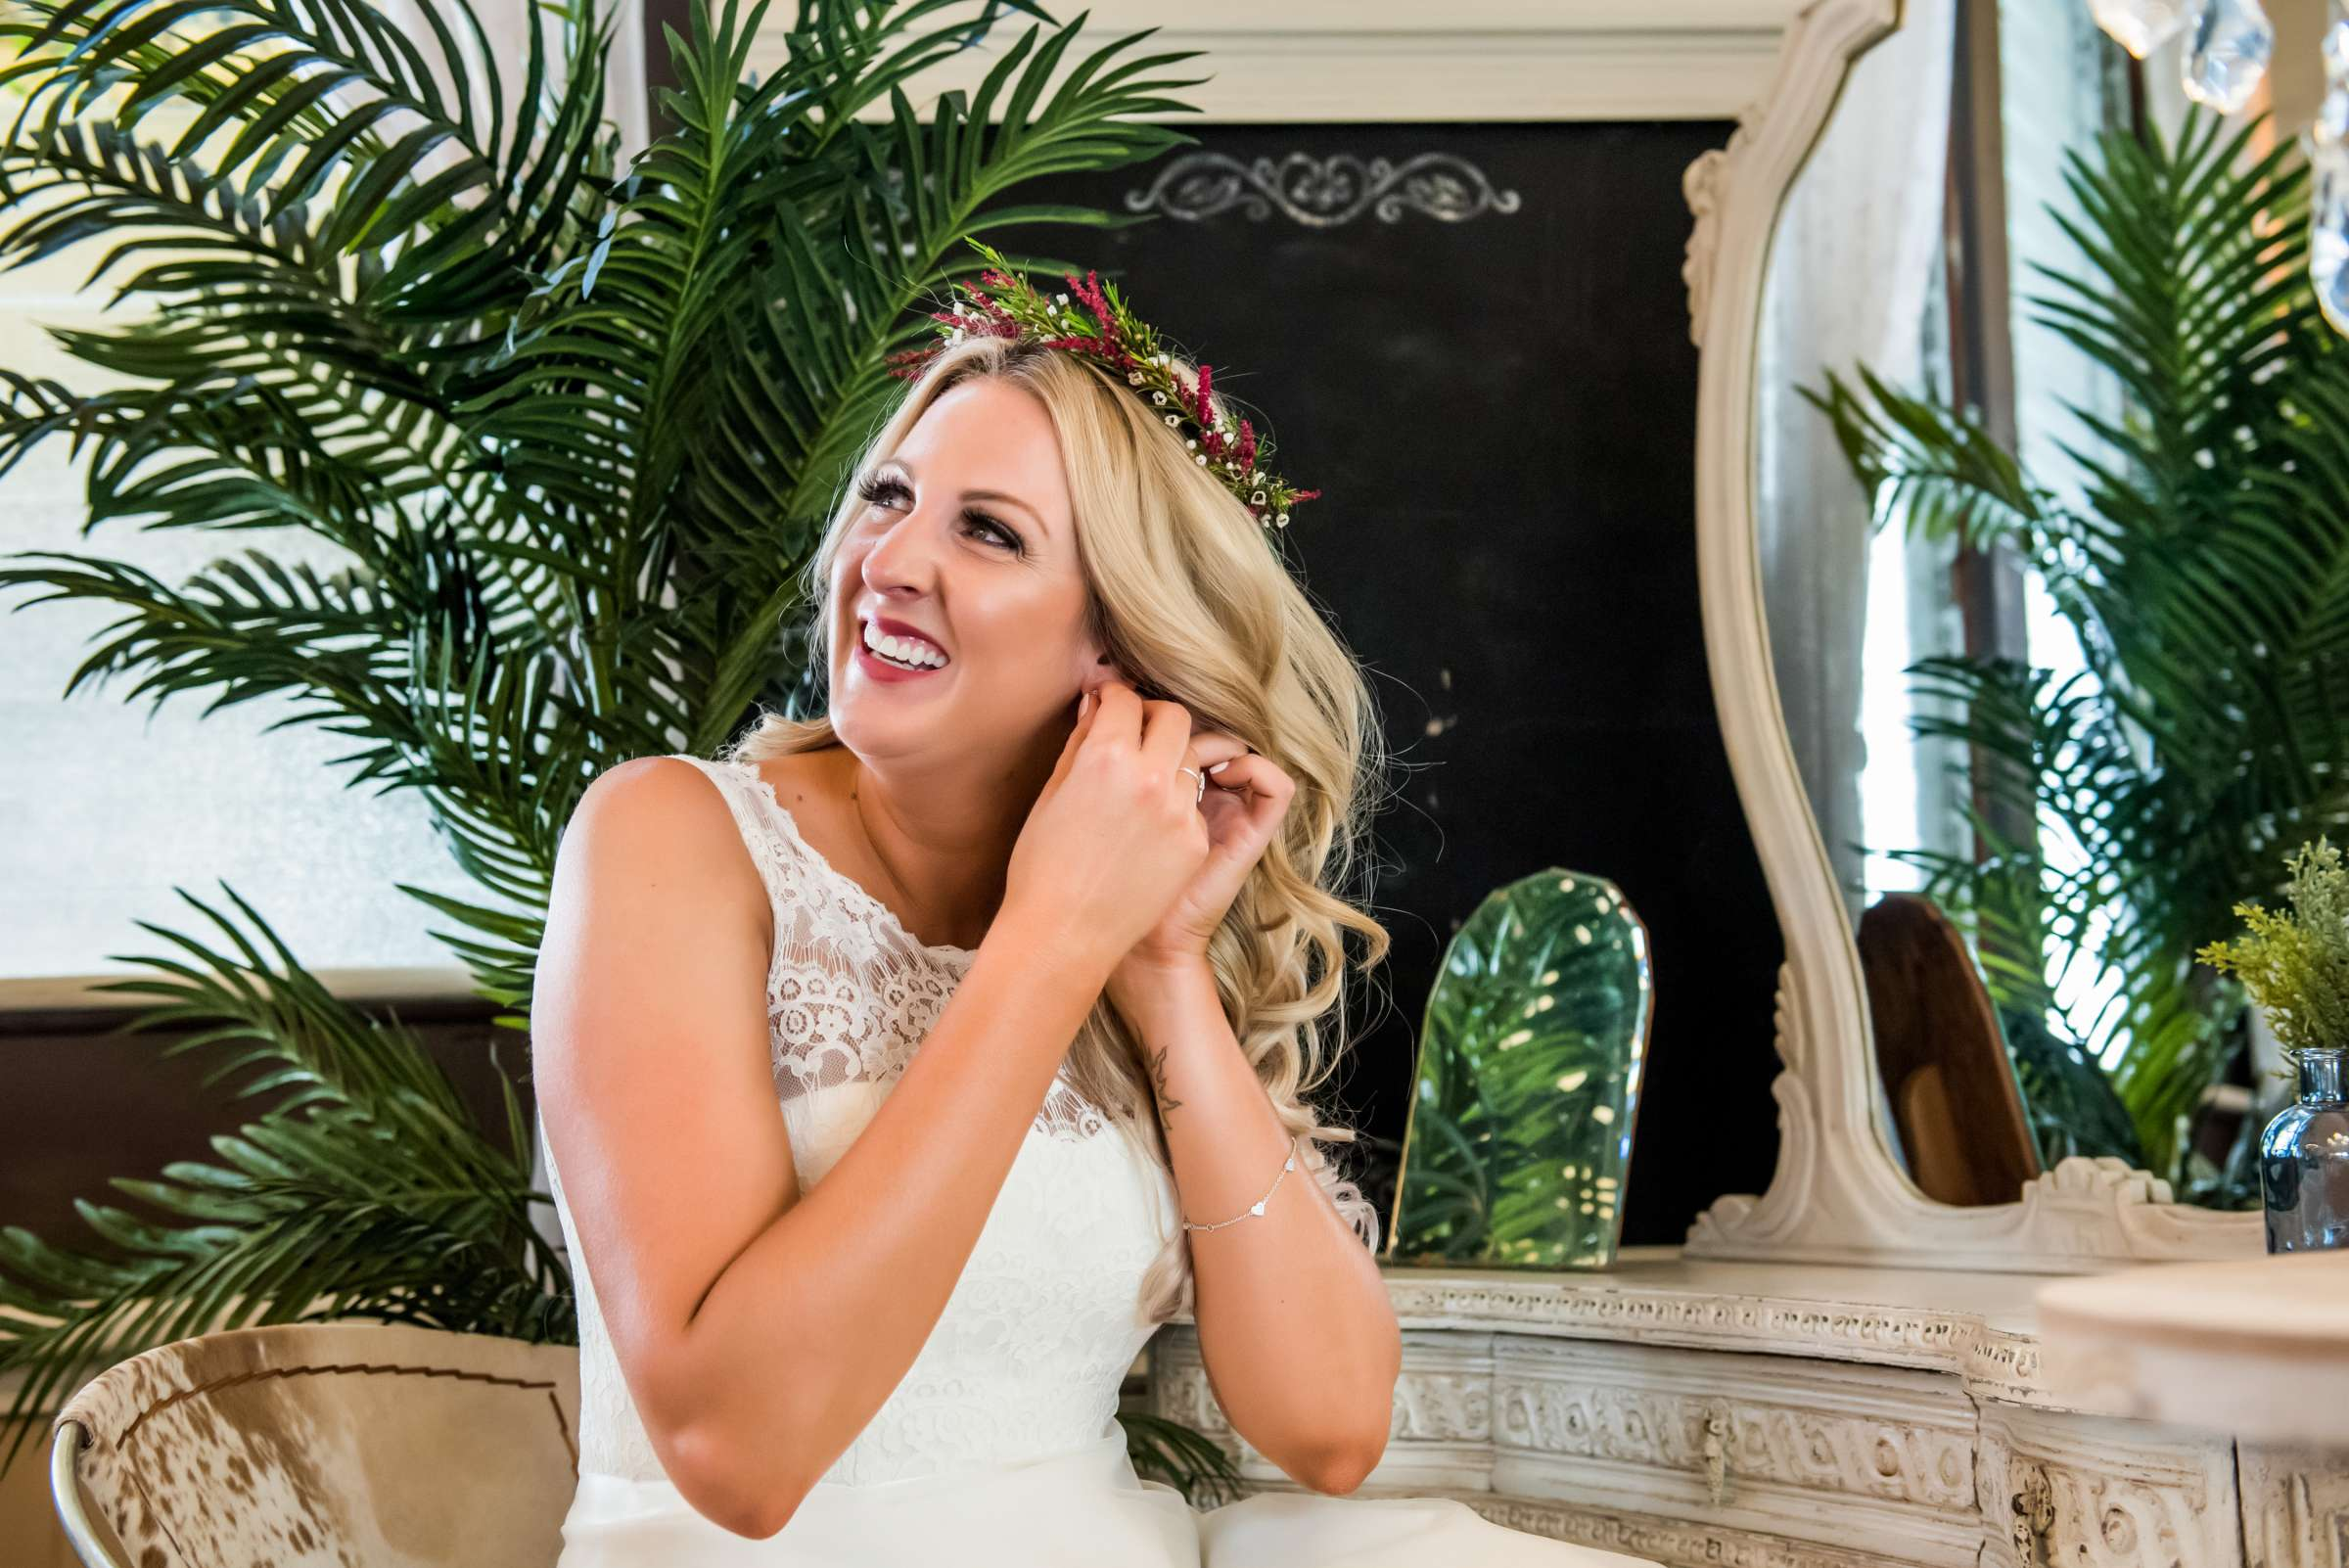 Twin Oaks House & Gardens Wedding Estate Wedding, Brittany and Sean Wedding Photo #45 by True Photography